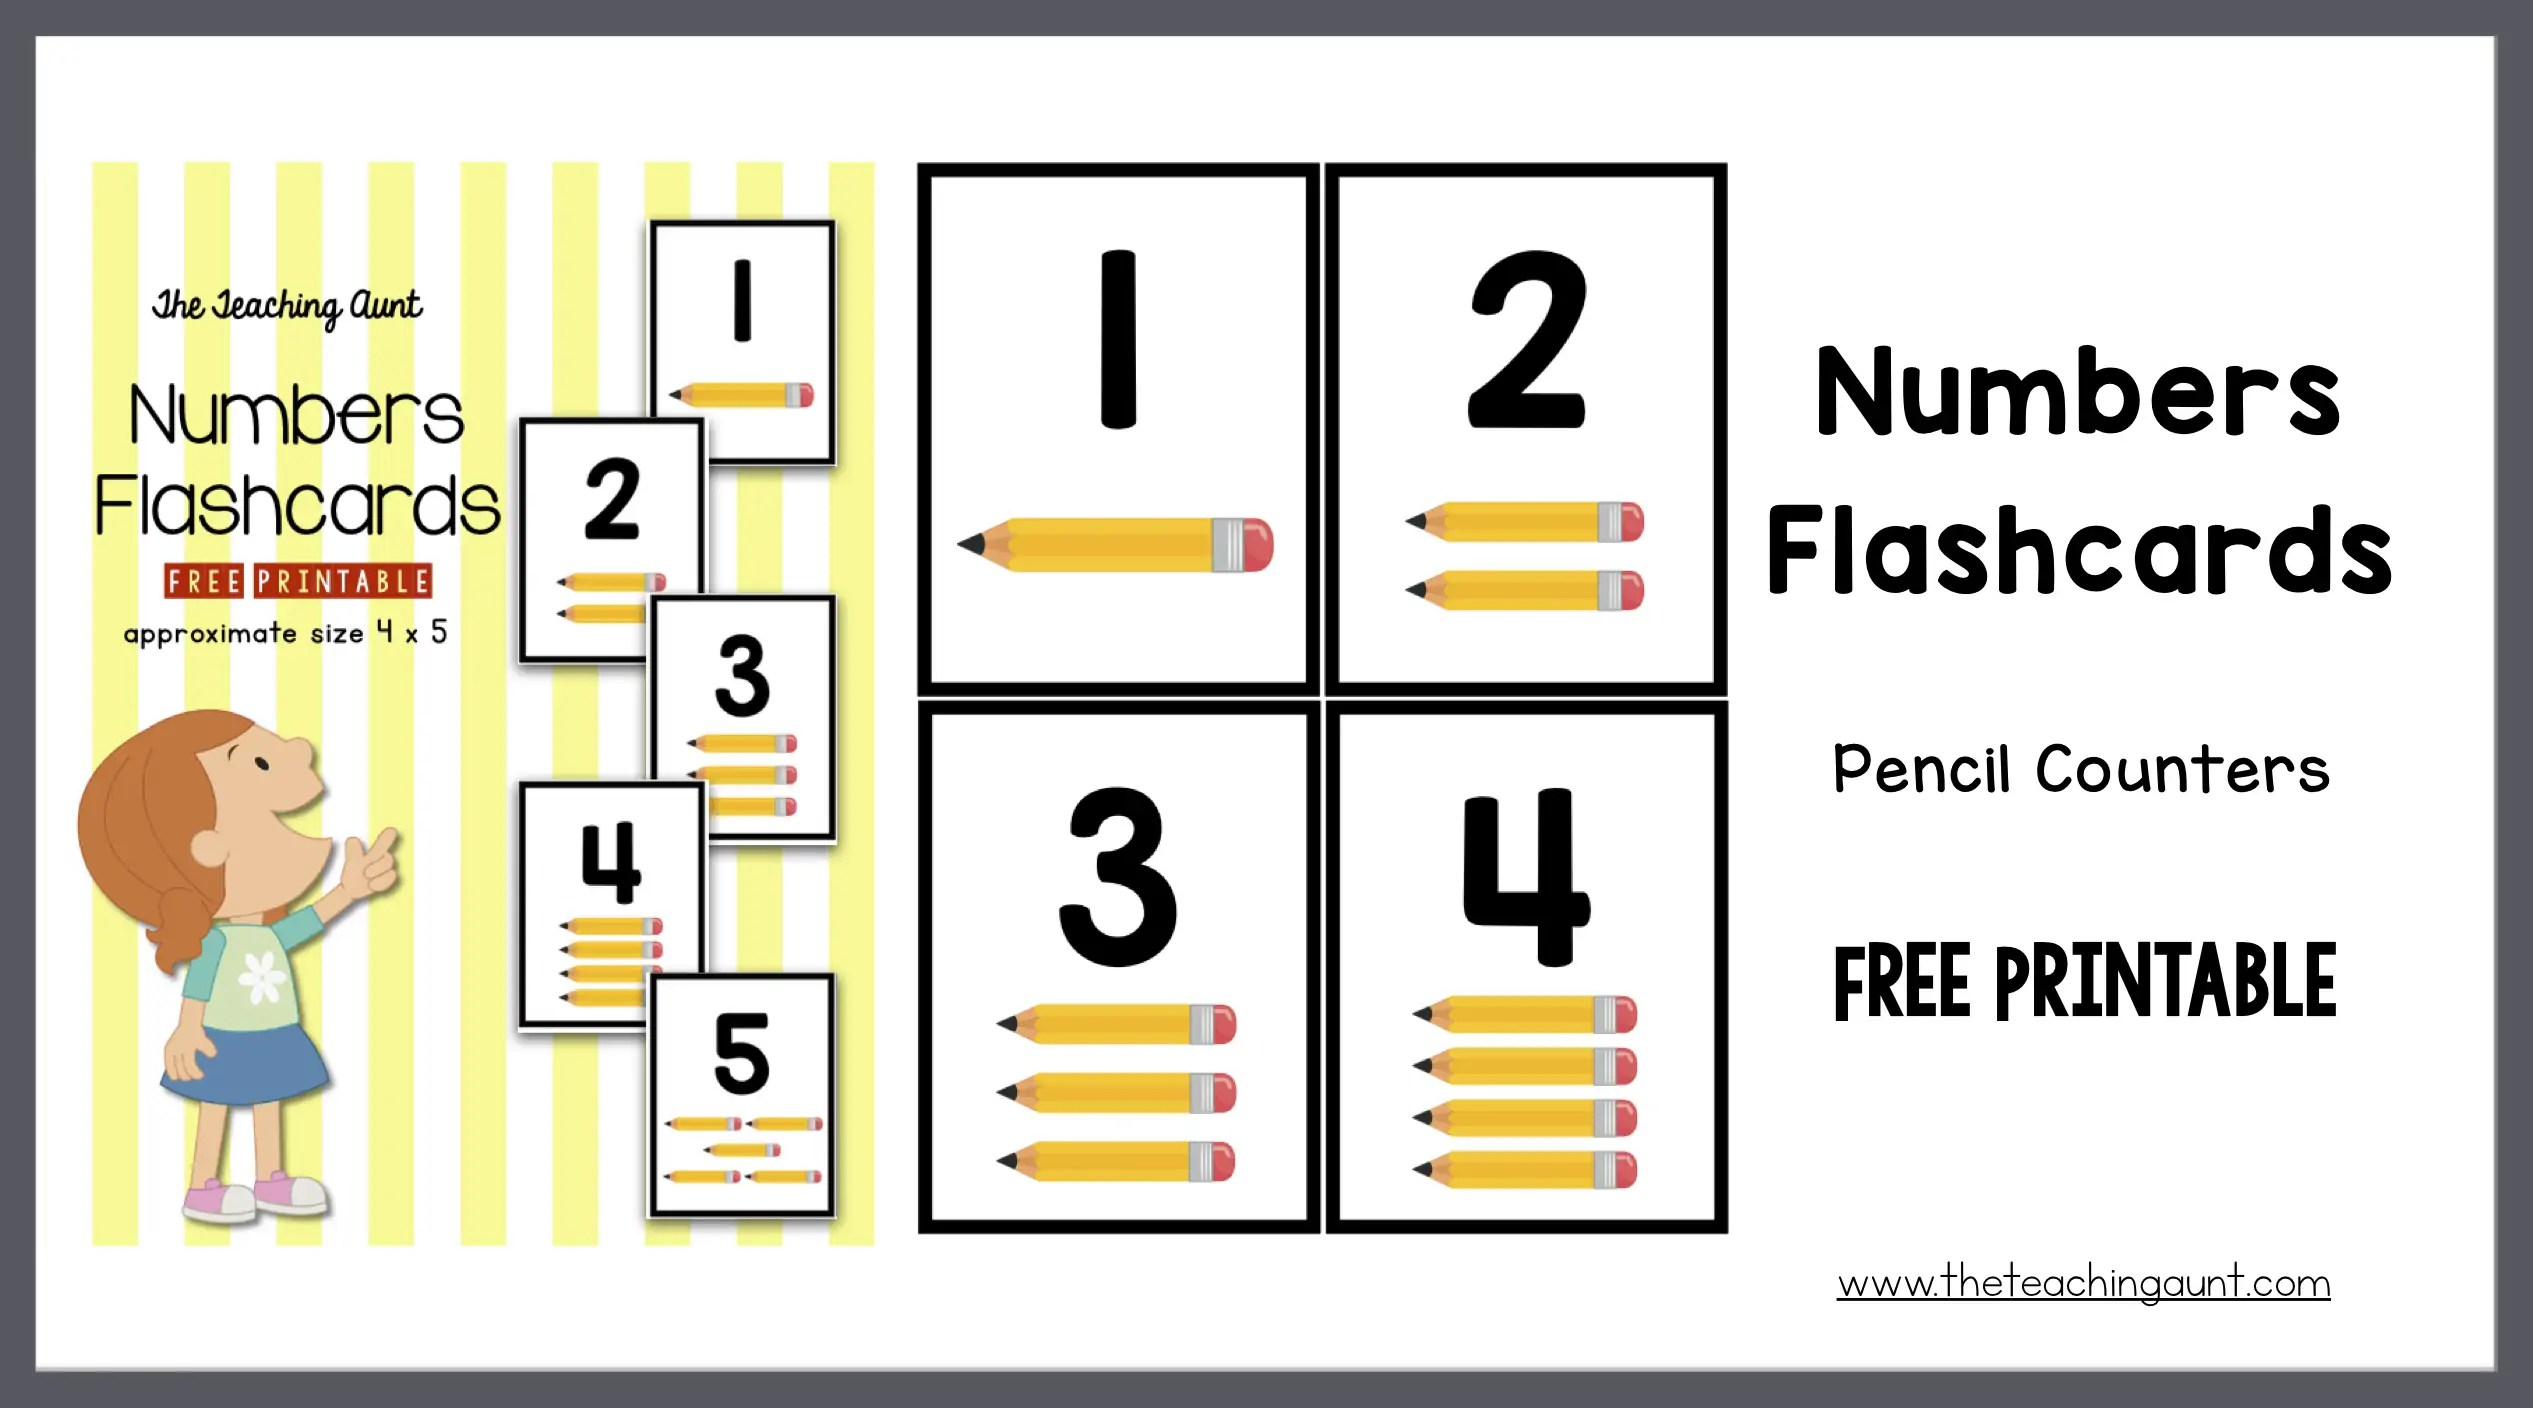 photograph relating to Printable Toddler Flash Cards known as Figures Flashcards Pencil Counters - The Coaching Aunt